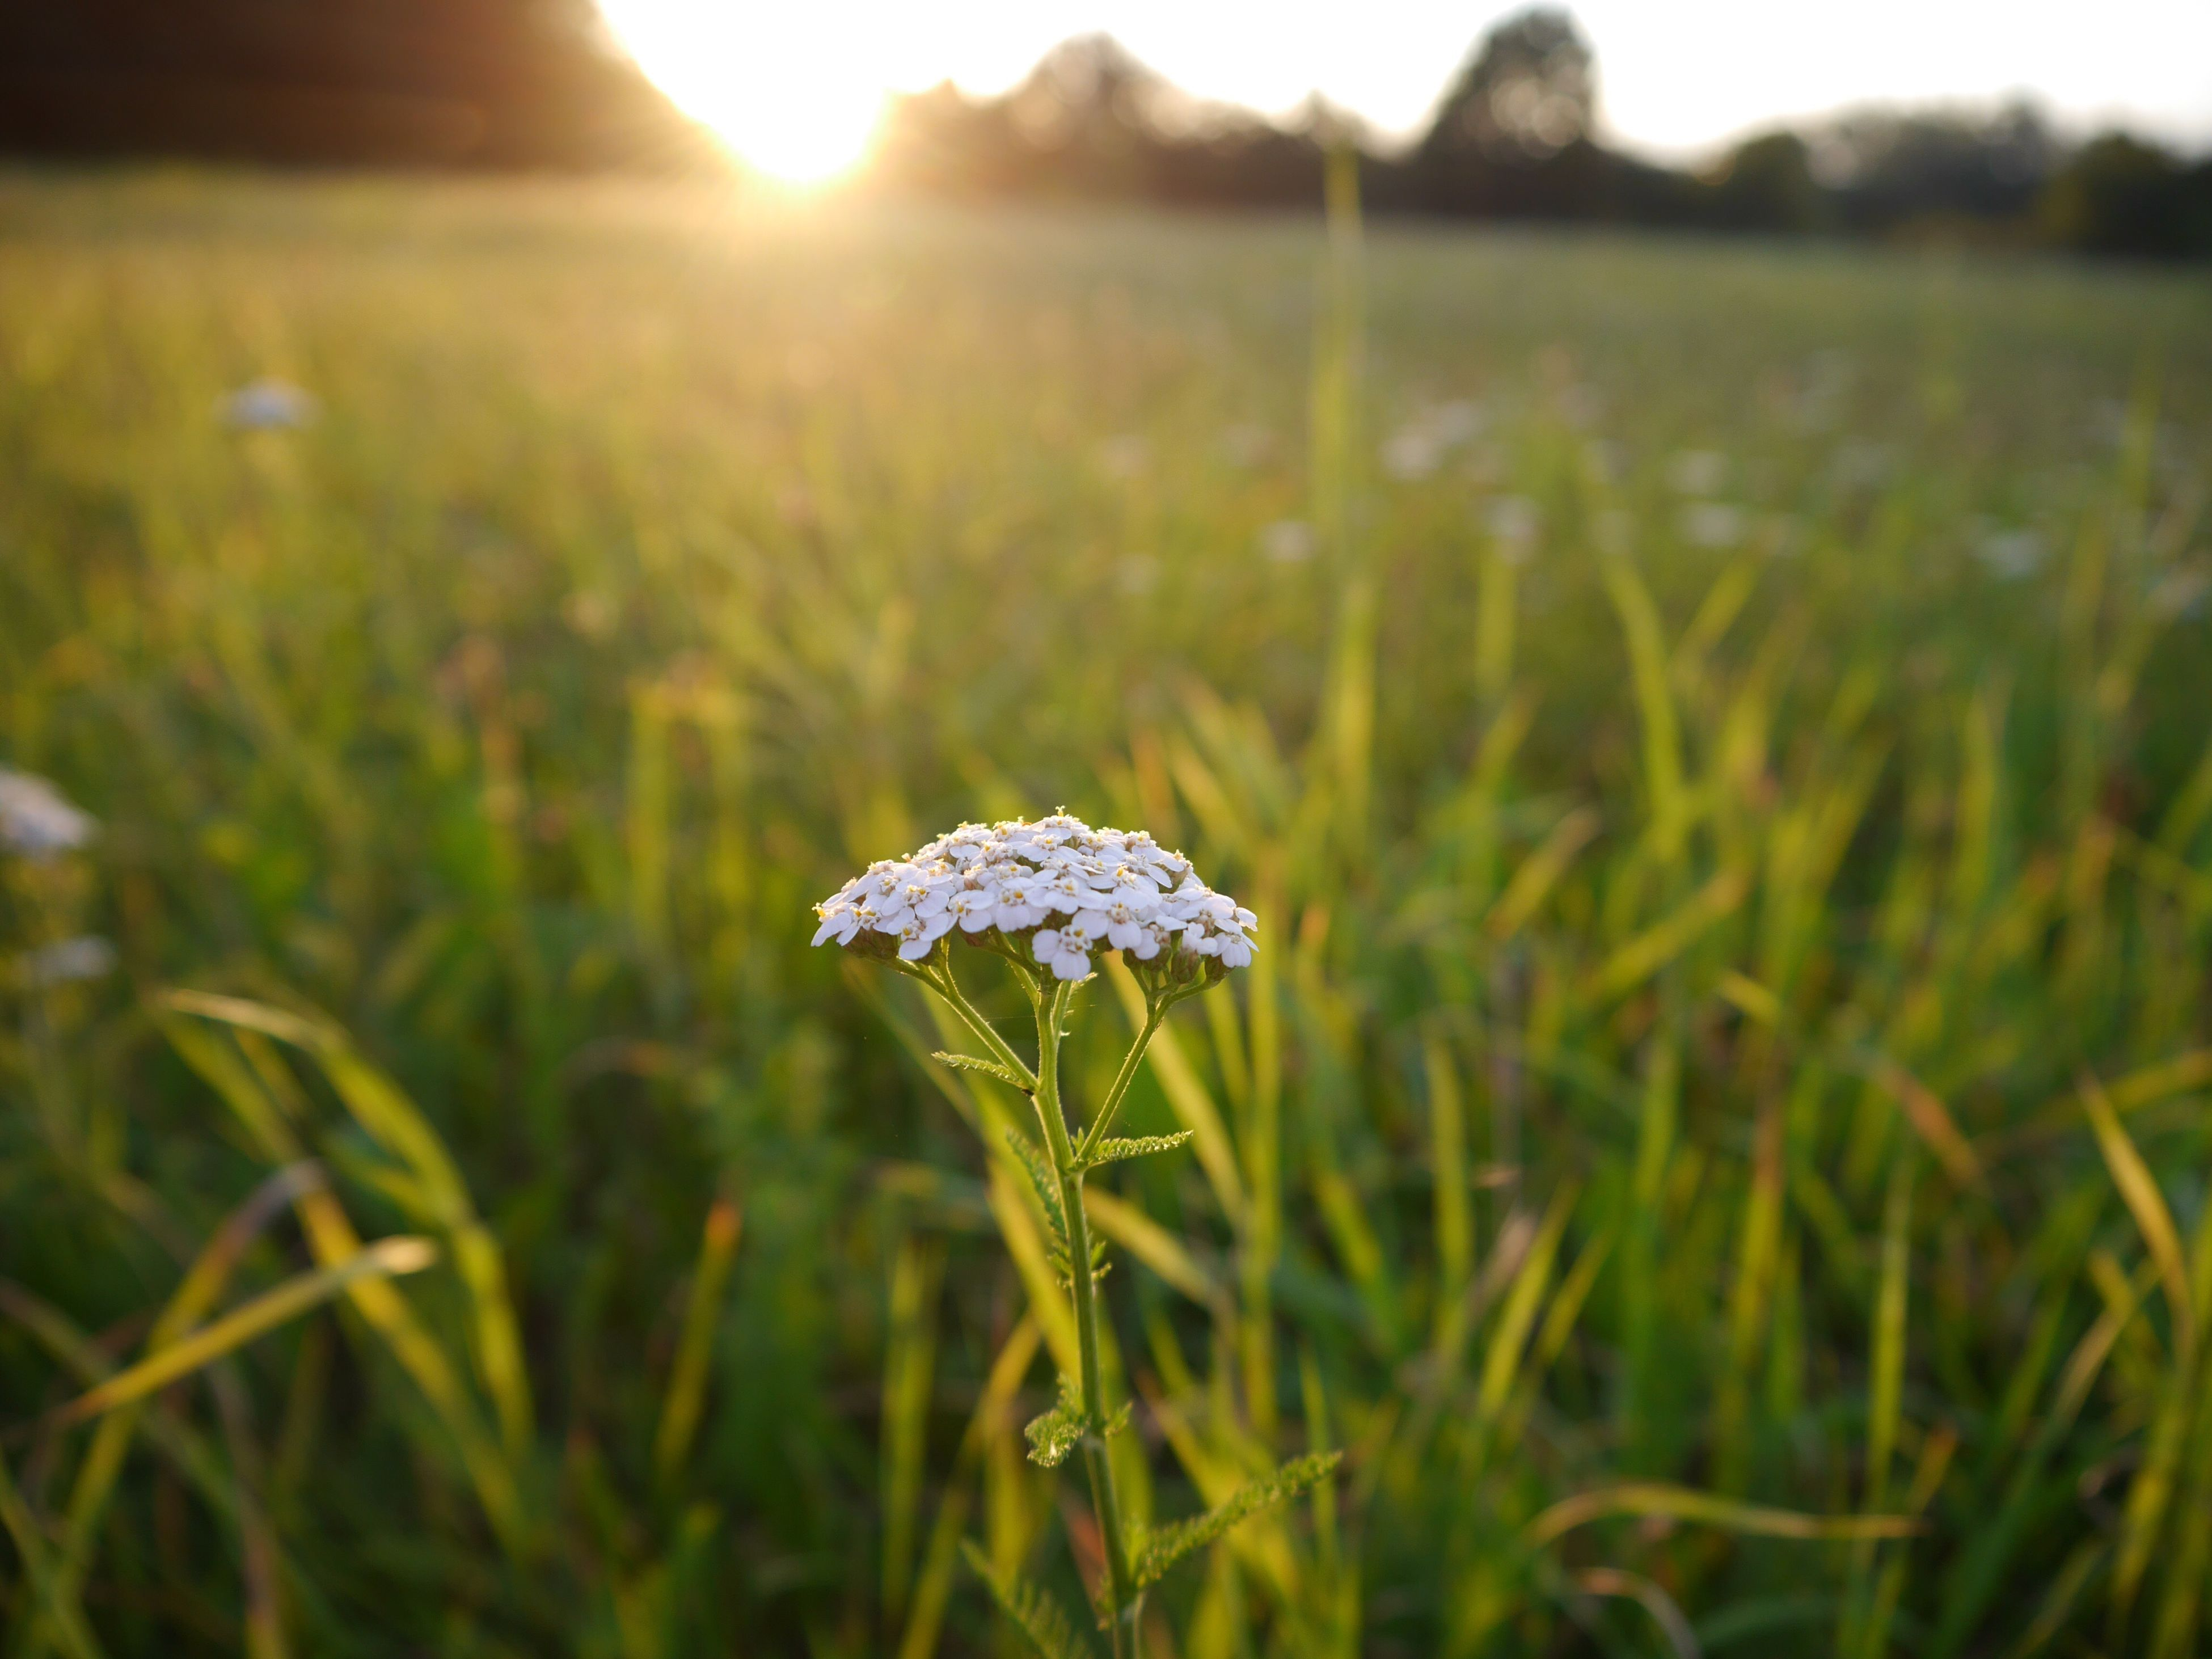 beauty in nature, growth, nature, freshness, fragility, flower, sunlight, plant, outdoors, no people, day, close-up, grass, flower head